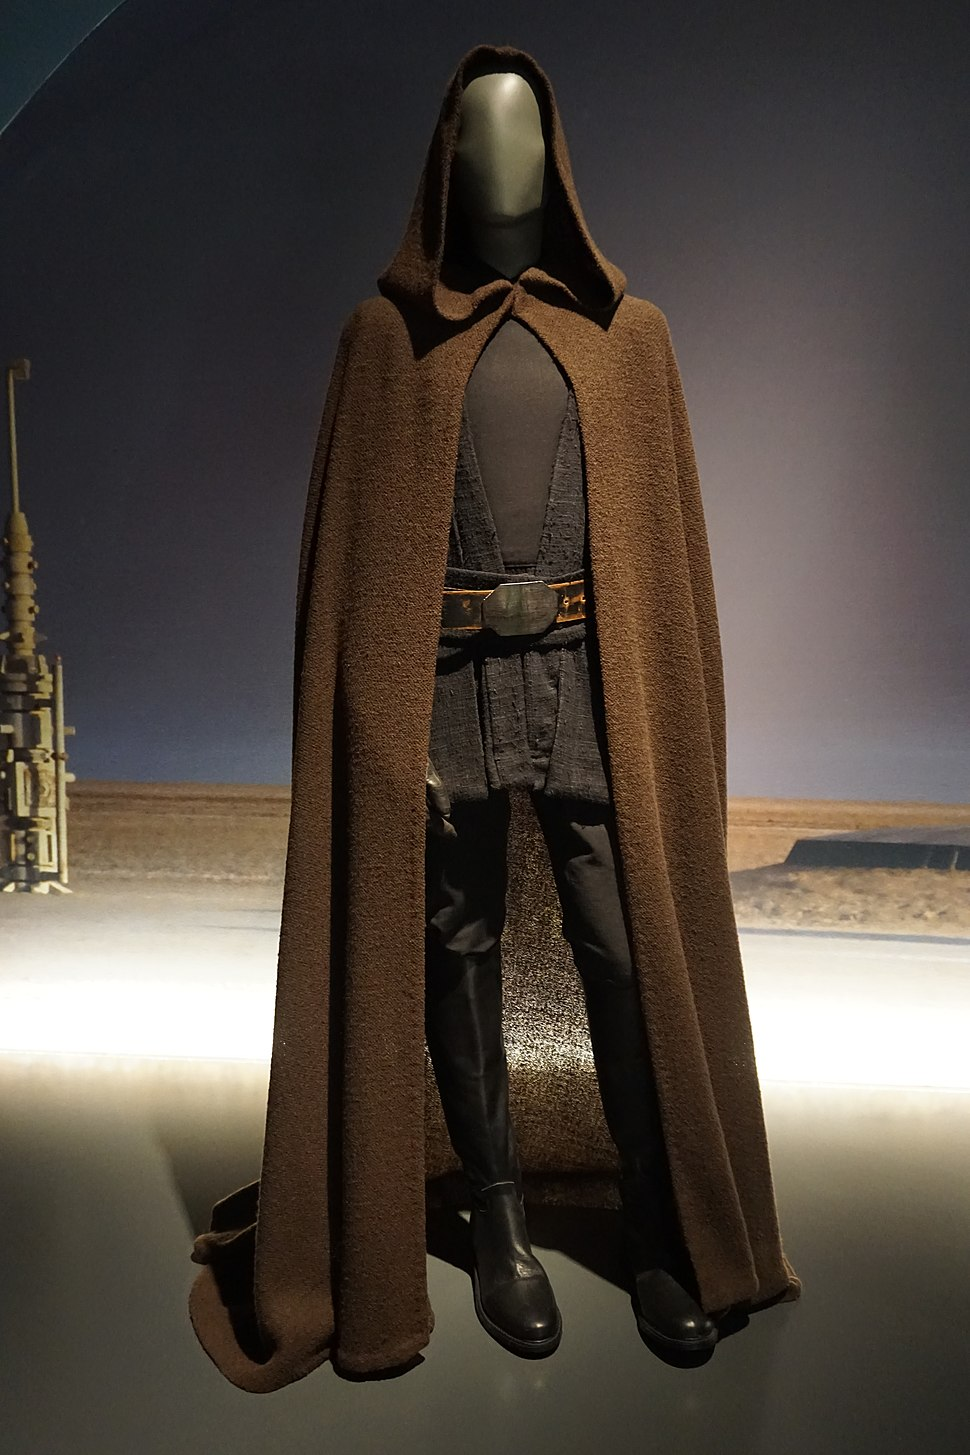 Star Wars and the Power of Costume July 2018 08 (Luke Skywalker%27s Jedi robes from Episode VI)